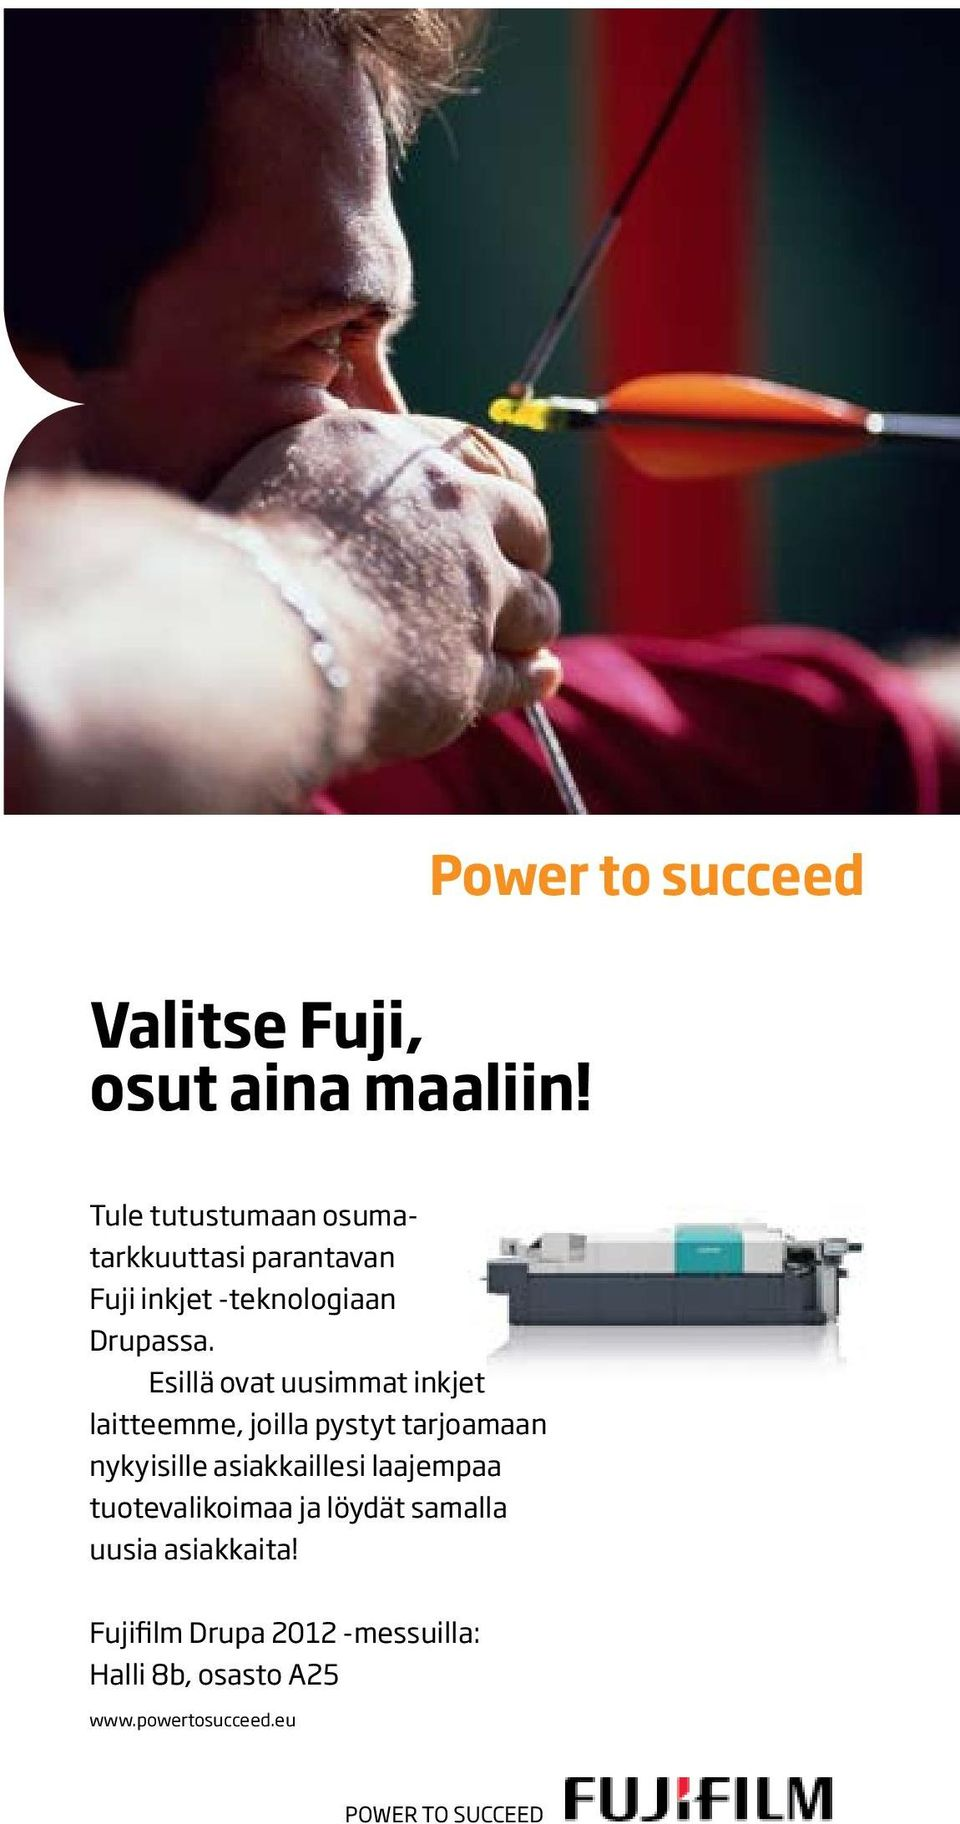 At drupa 2012, Fujifilm will be showcasing advanced inkjet solutions that can bring new print revenues to your business and deliver new applications to your customers.